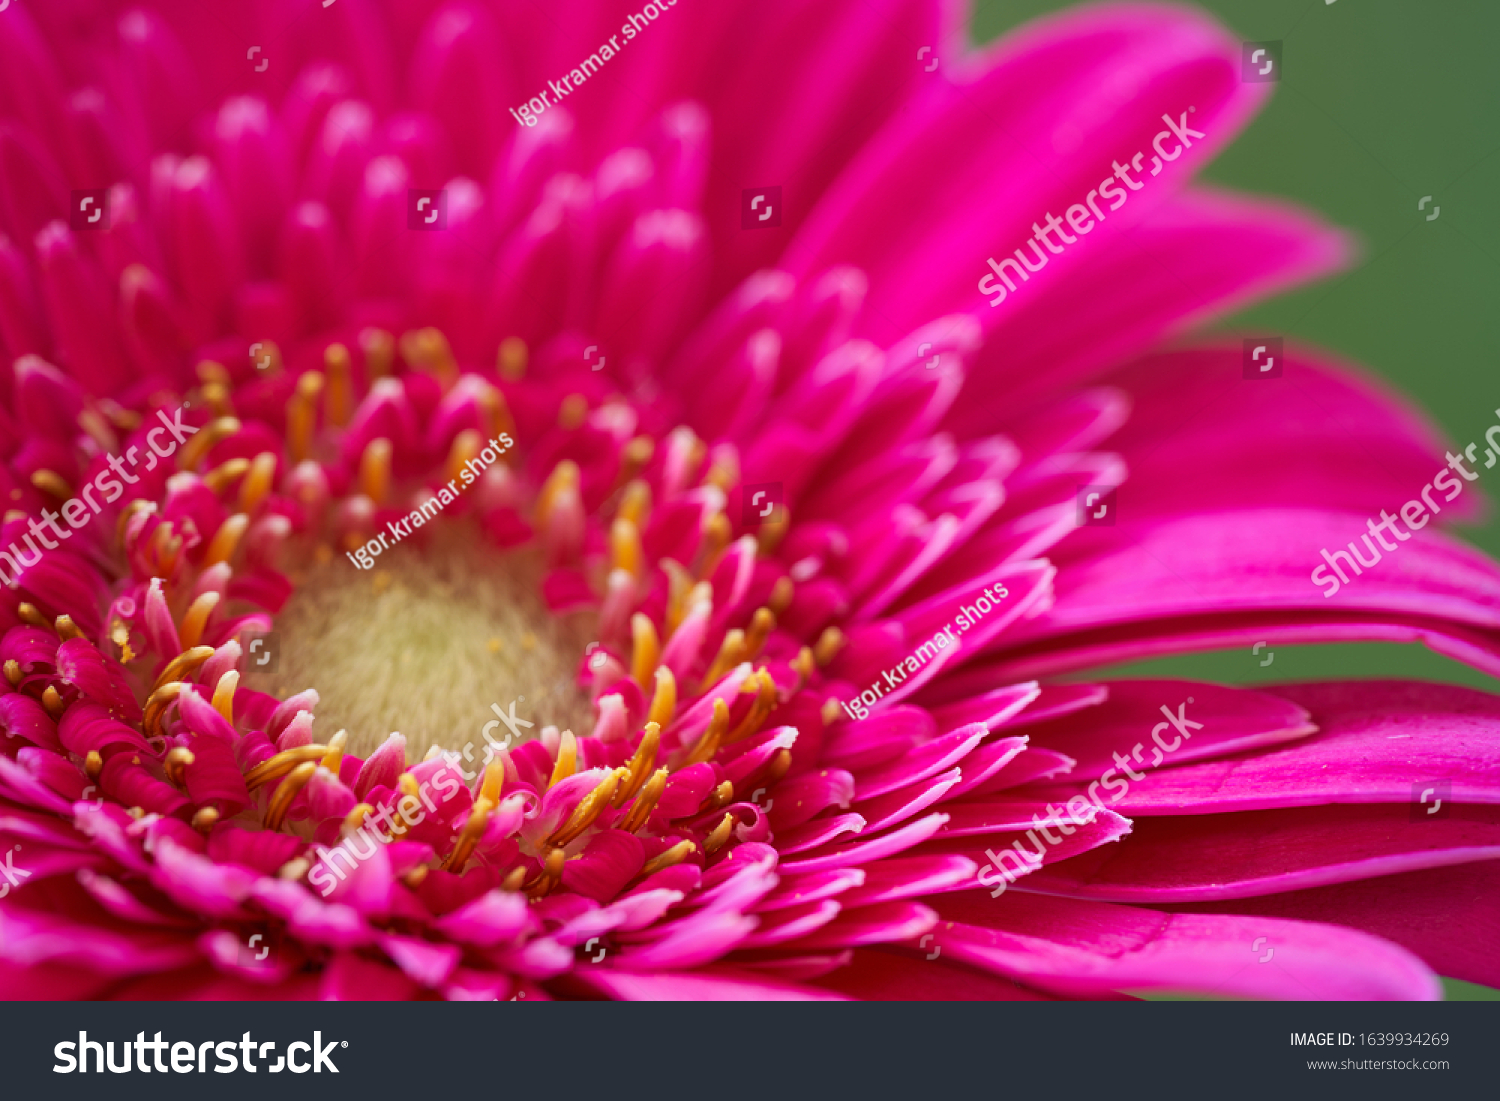 stock-photo-close-up-of-gerbera-jamesoni